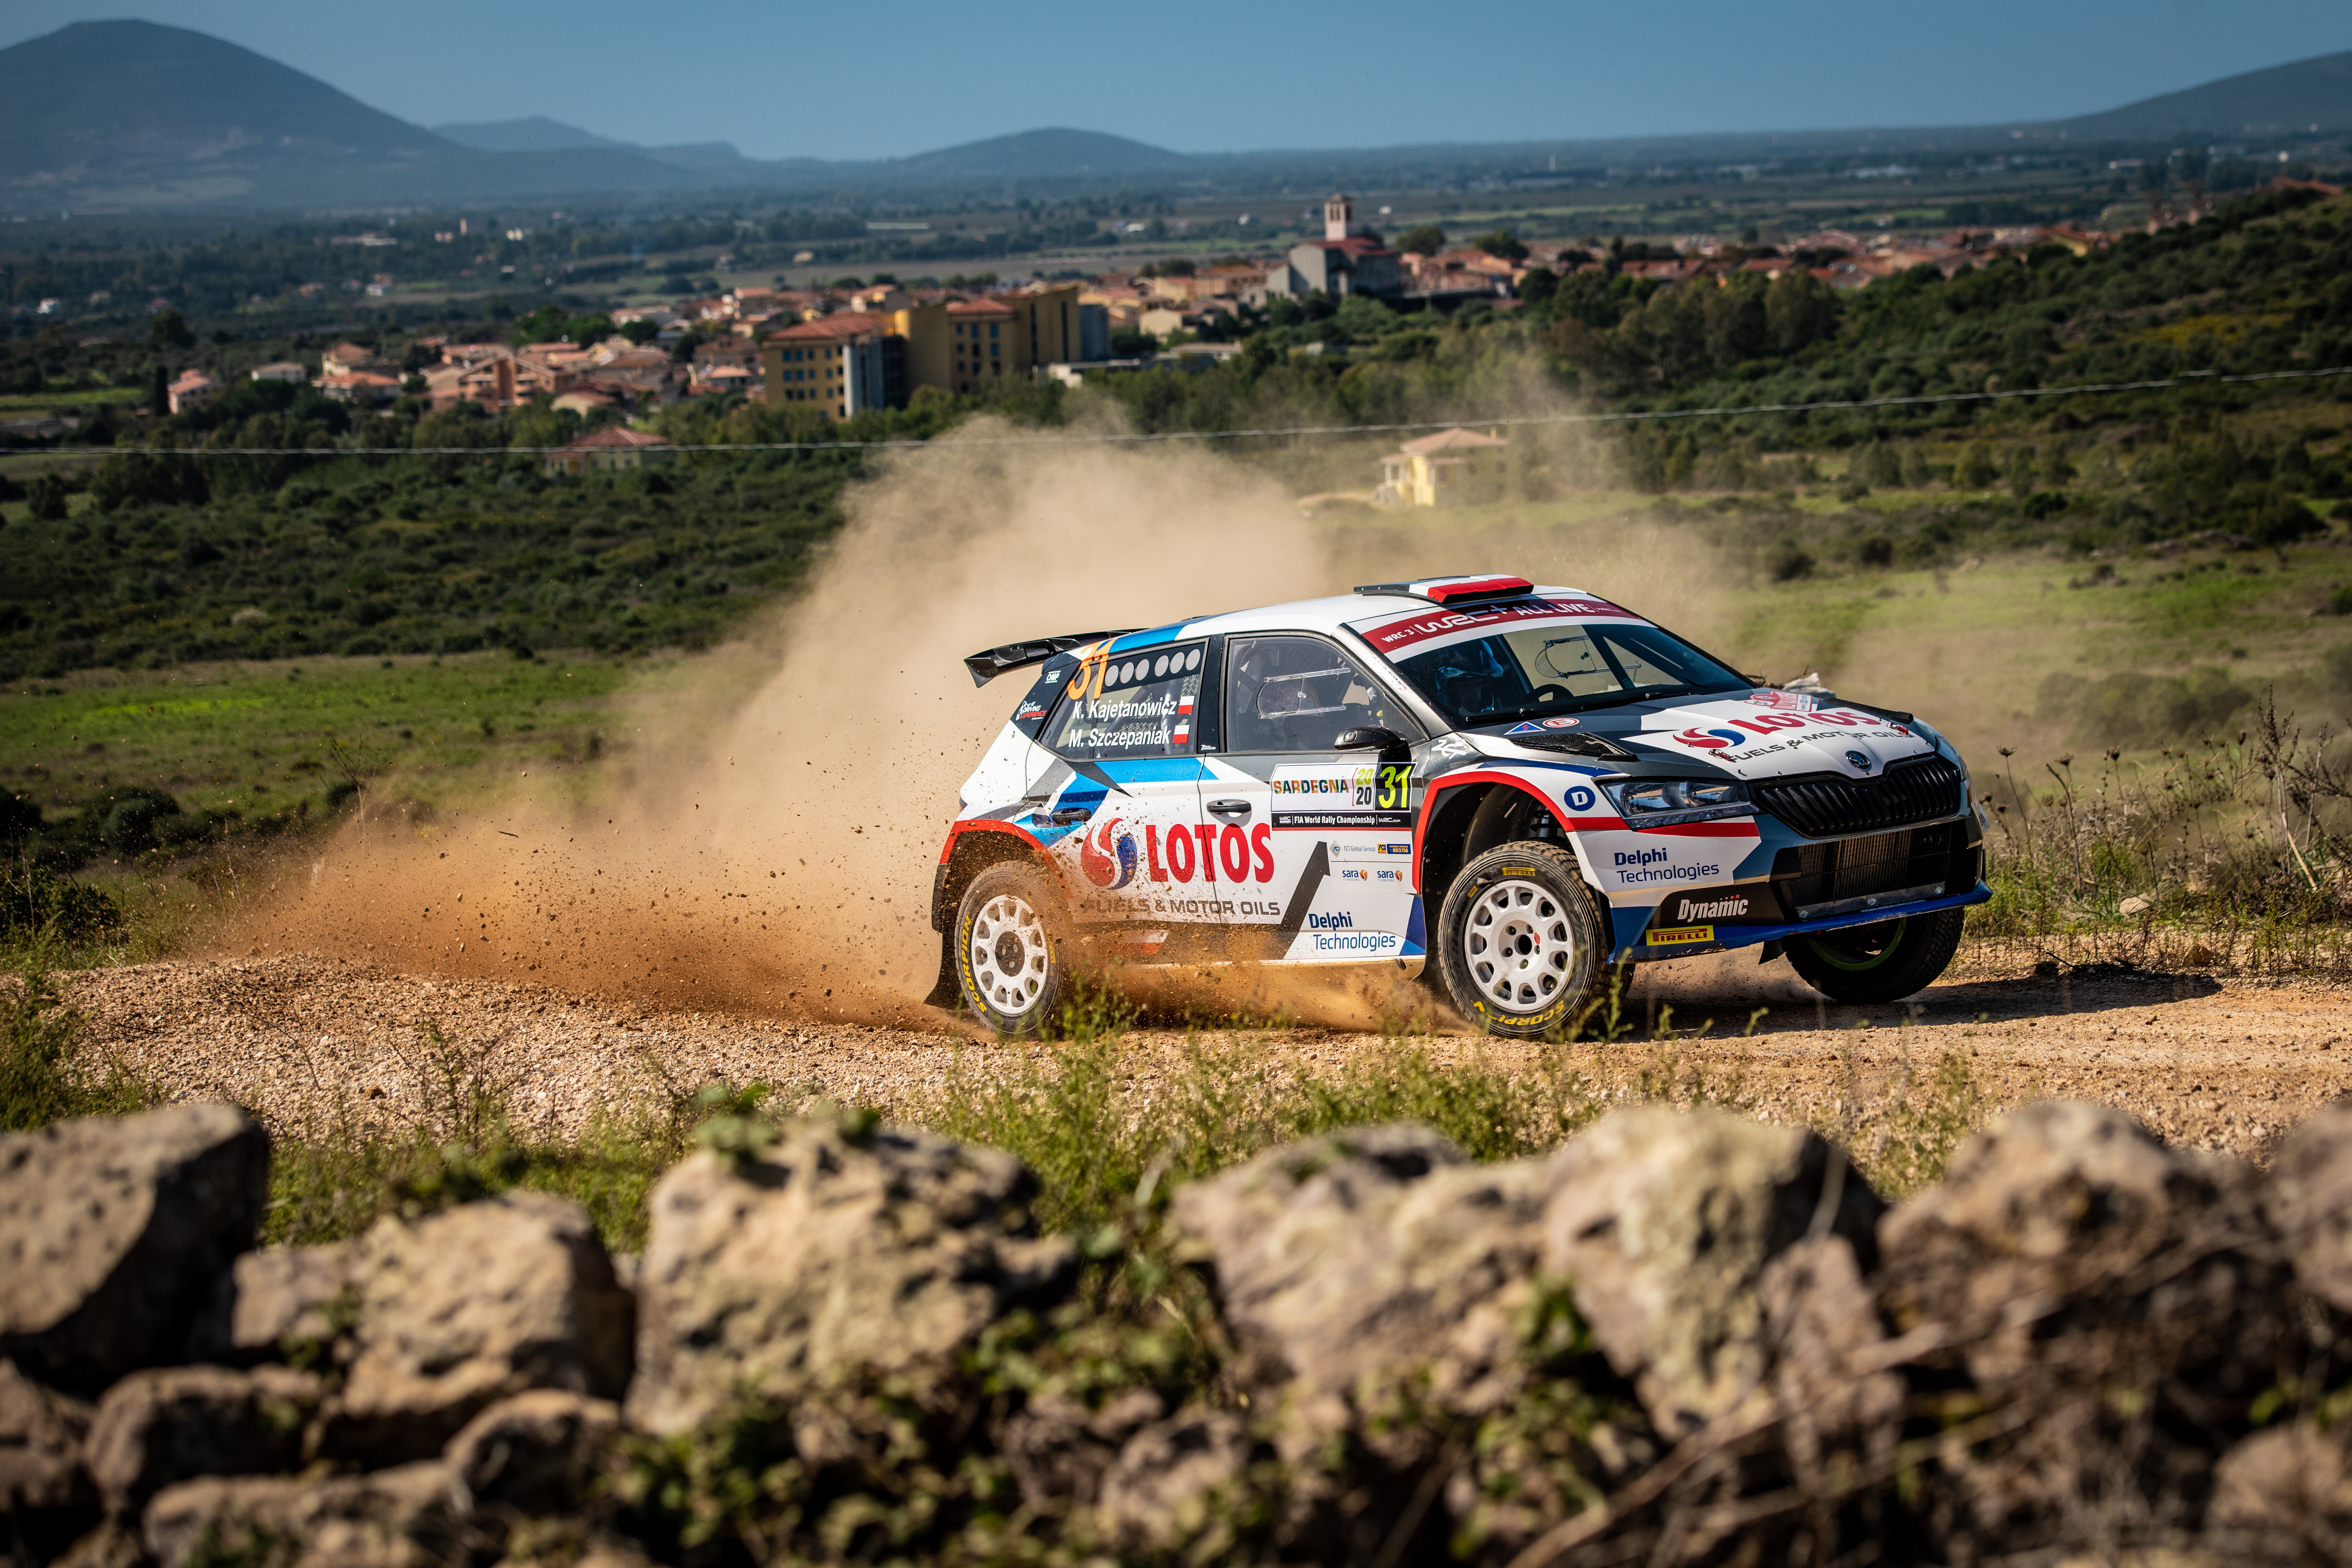 Rally Italia Sardegna: Two SKODA crews on top of WRC2 and WRC3 after tough first leg - Image 8